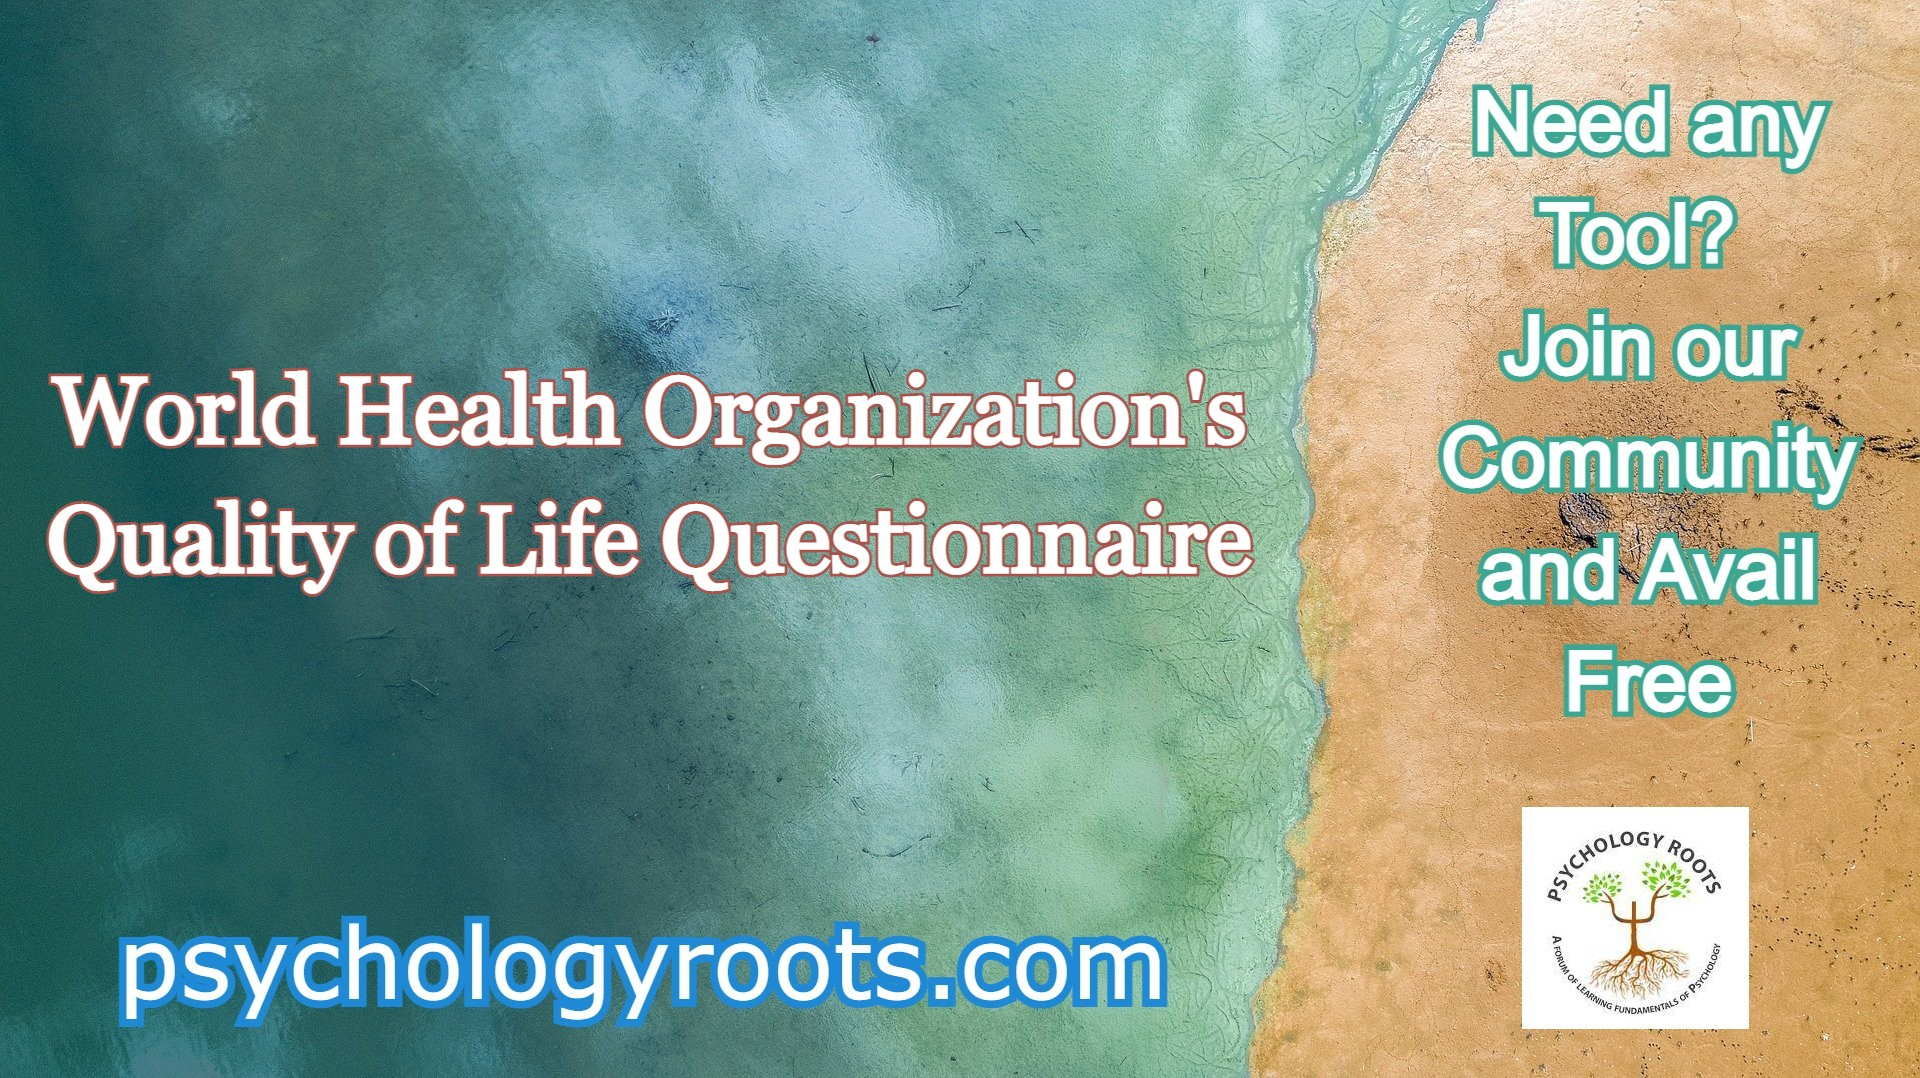 World Health Organization's Quality of Life Questionnaire